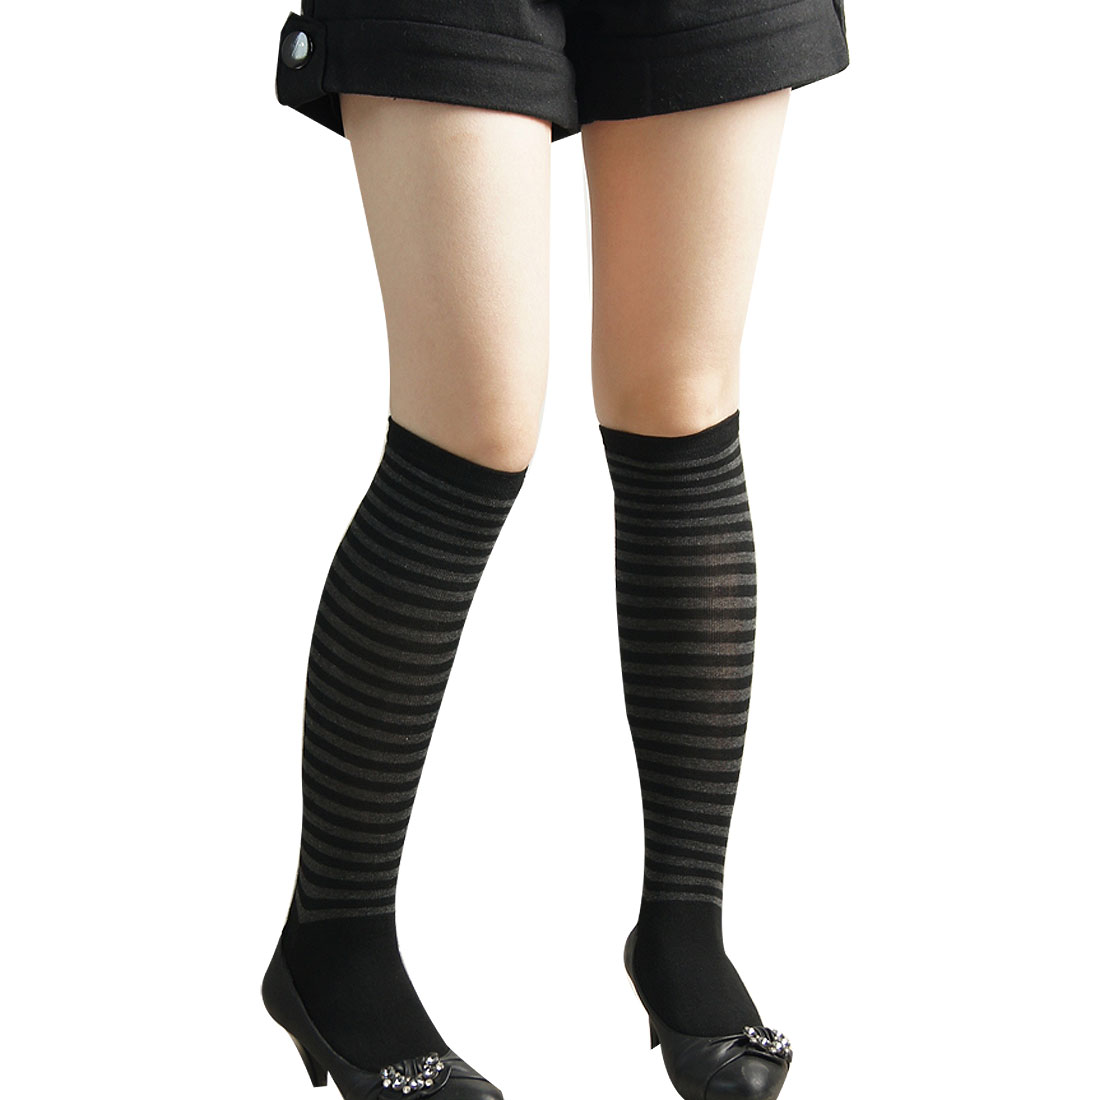 Black Gray Beblow The Knee Style Socks Stretchy Stocking for Ladies